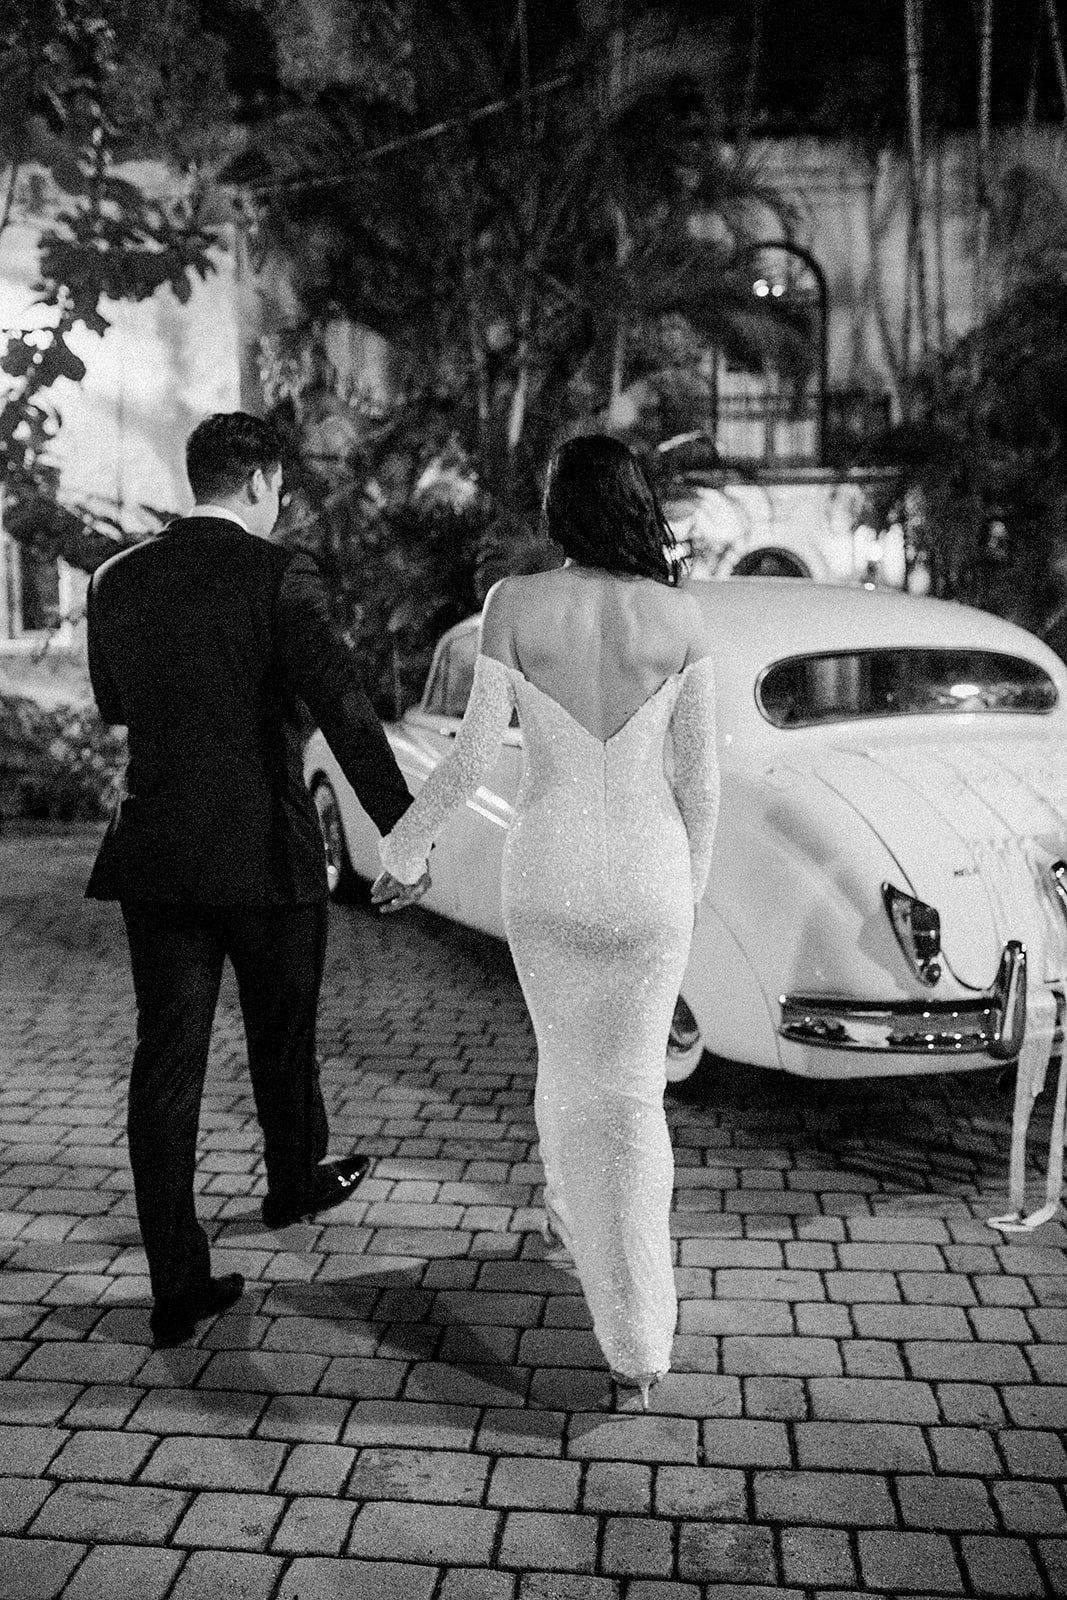 Romantic black and white photo of the bride and groom blackandwhitewedding blackandwhitephoto brideandgroom justmarried wedding romanticwedding